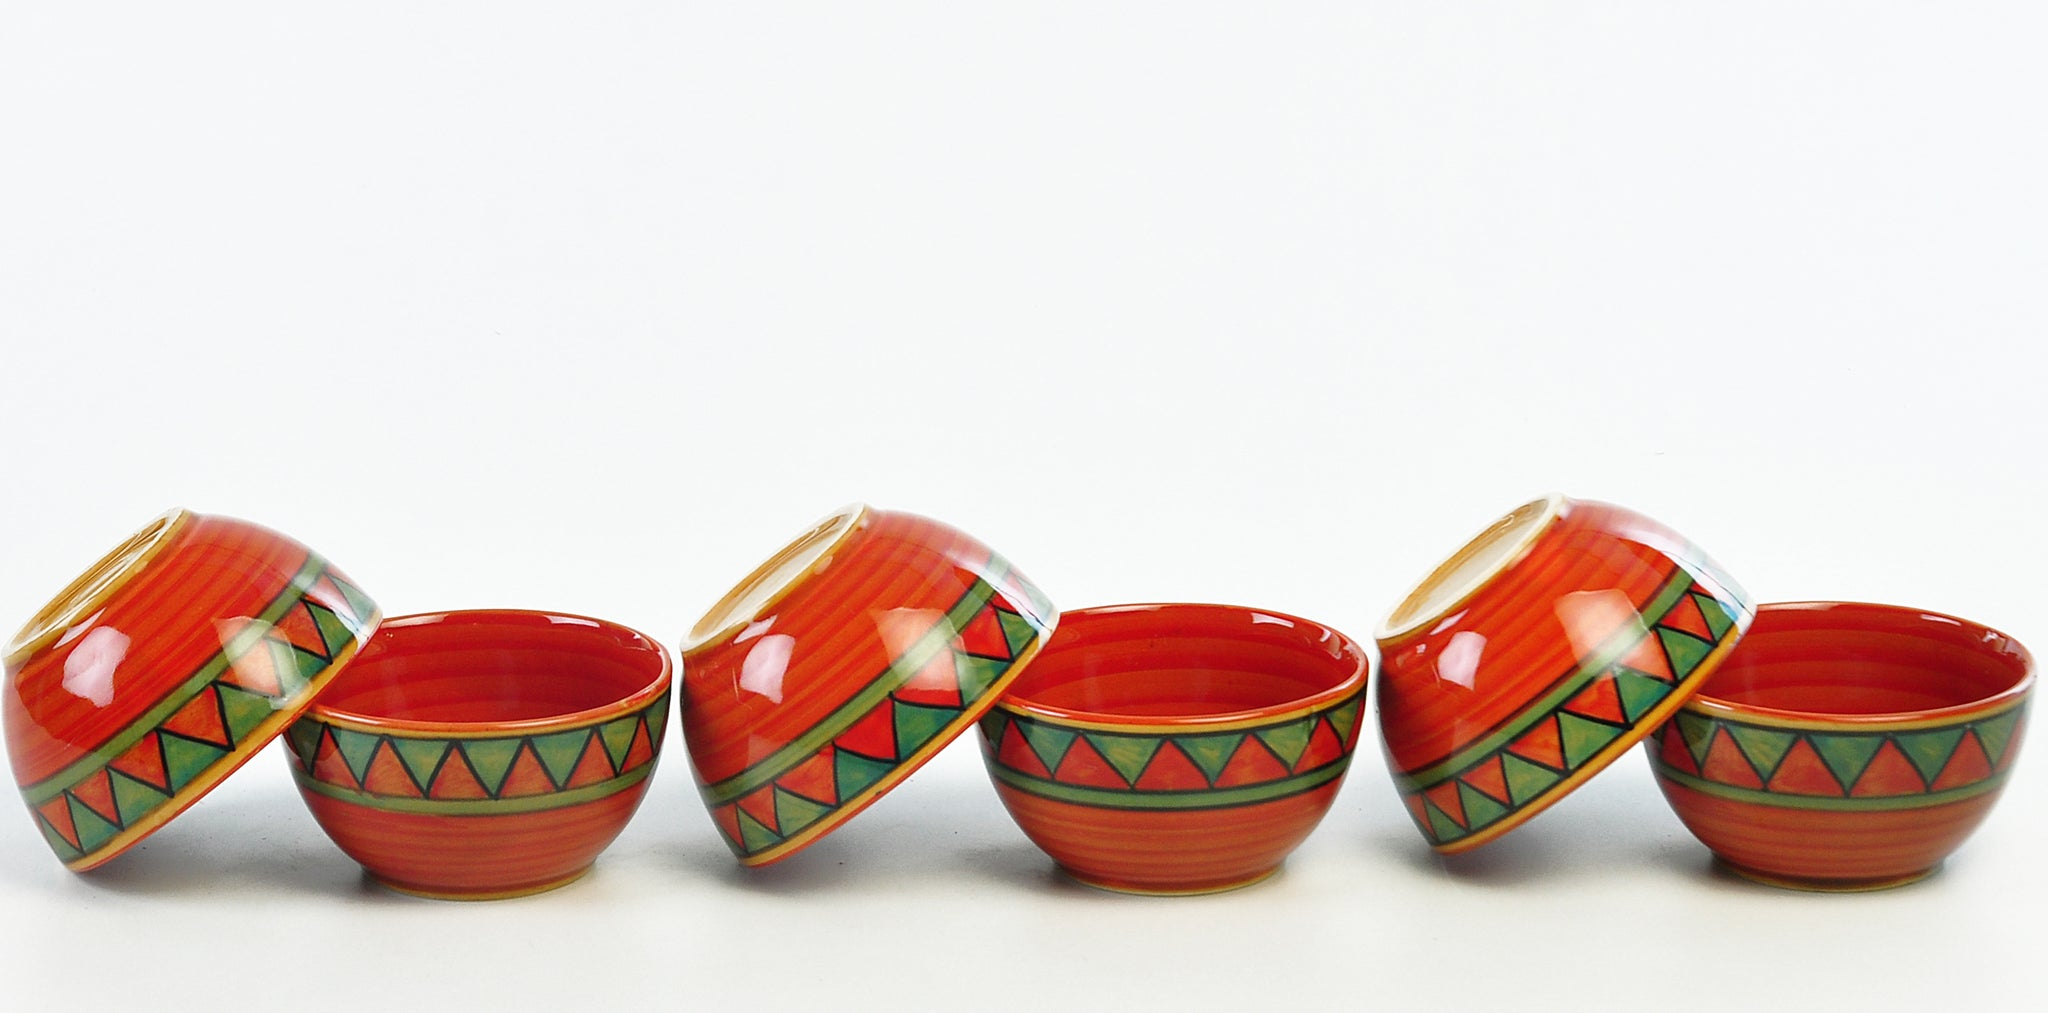 Trian Red N Green Sweet Bowls - Set of 6 pcs